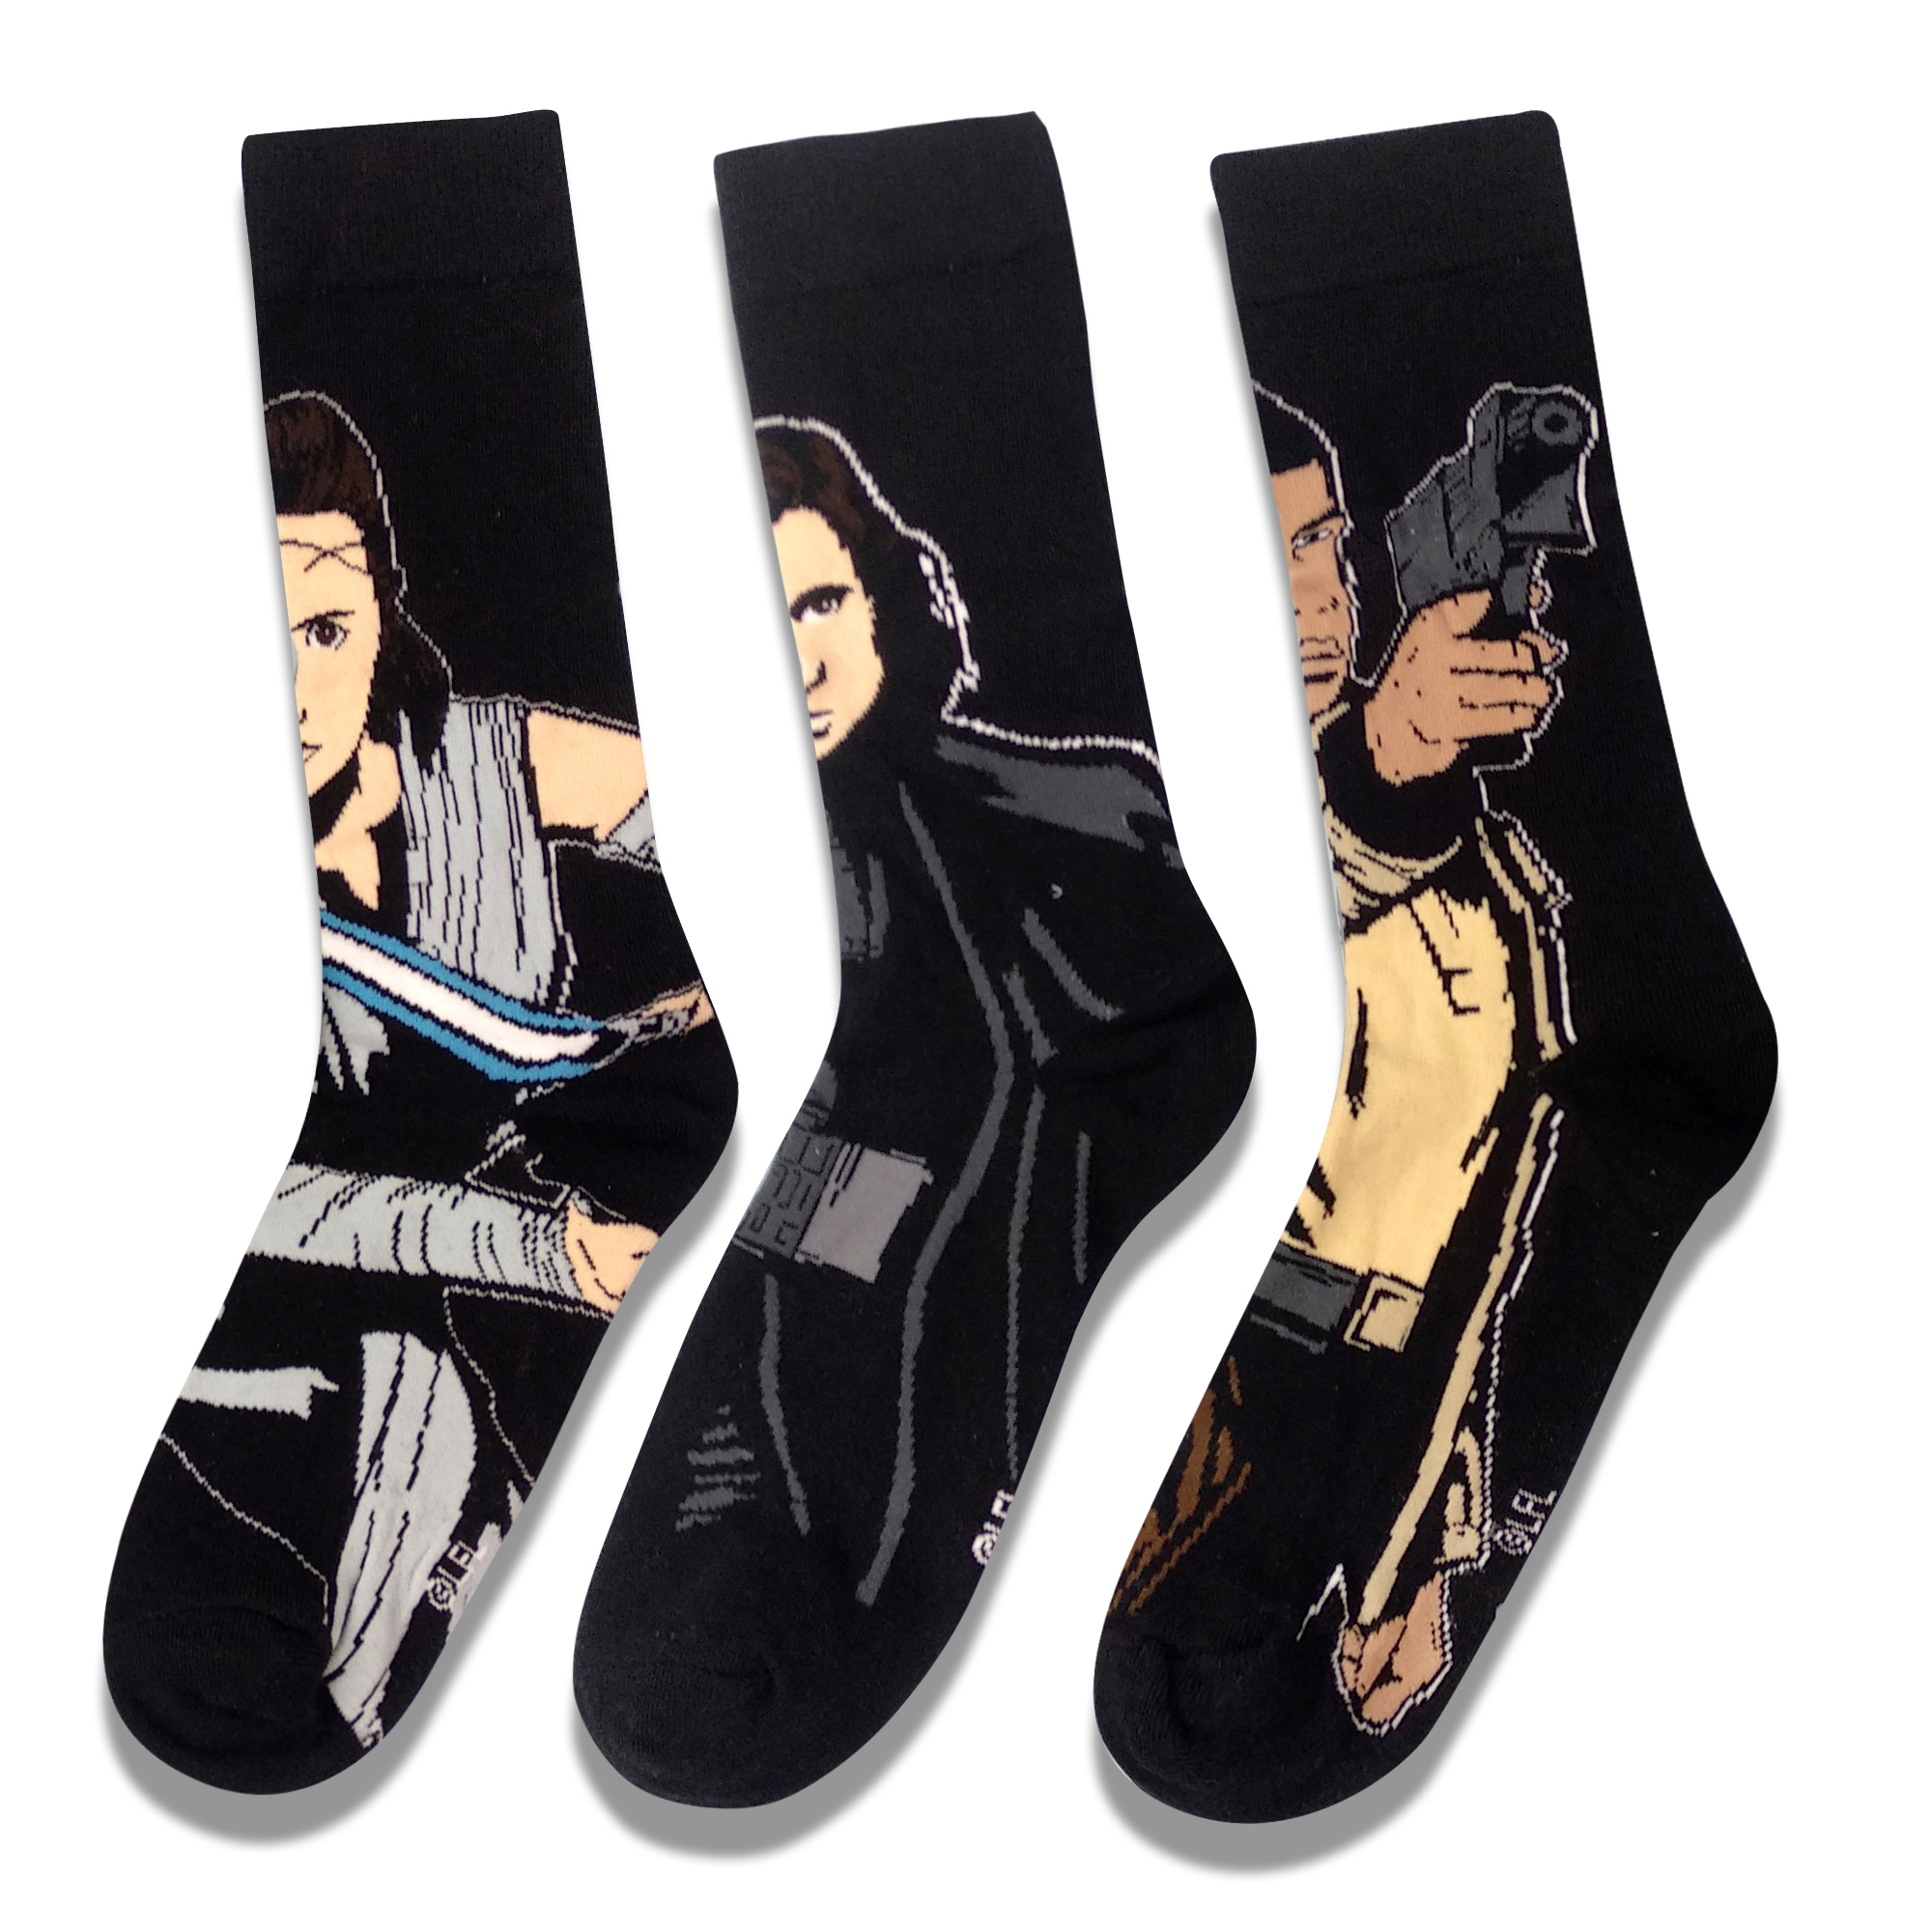 Black Casual Movie Character Star Wars Socks Cosplay Jedi Knight Novelty Men Women Sock Hip Hop Street Skateboard